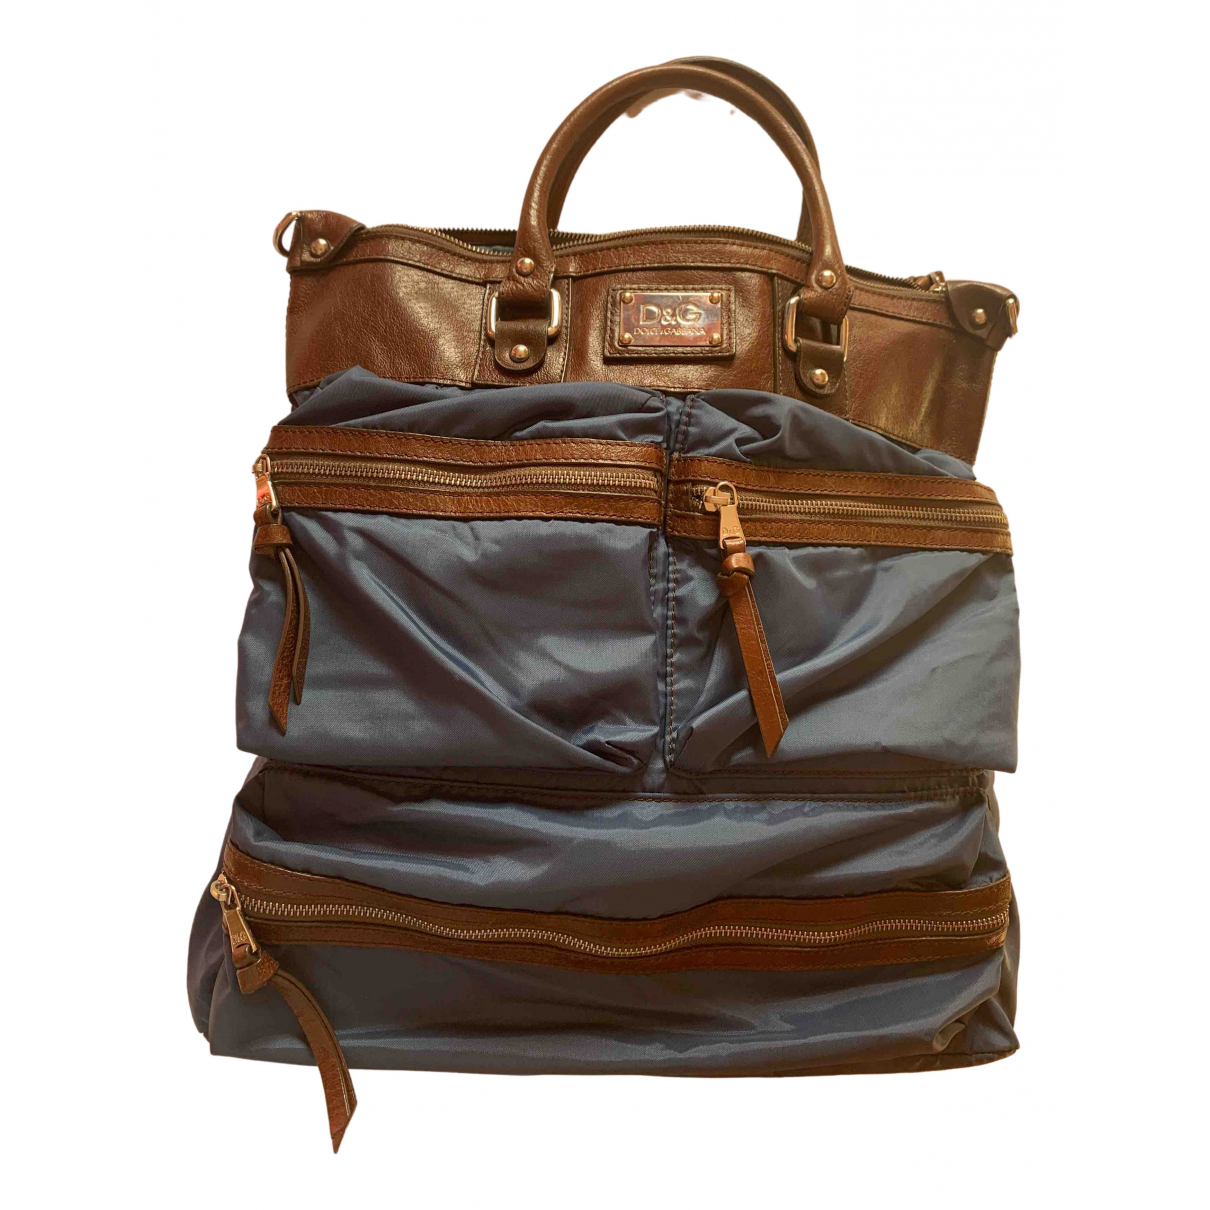 D&g N Brown Leather bag for Men N